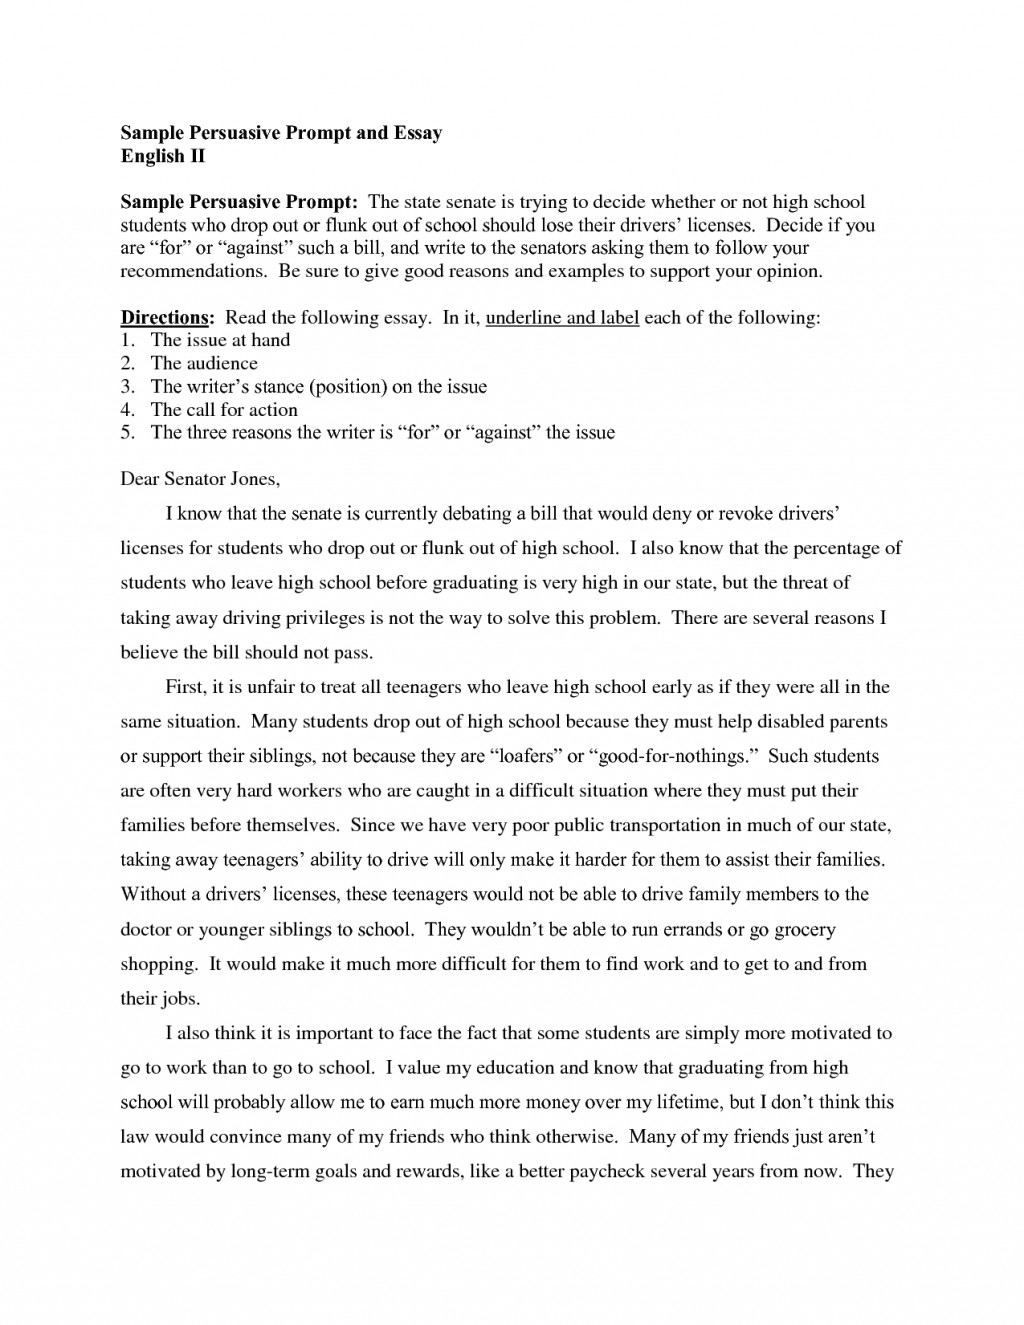 013 Research Paper Easy Topic Persuasive Essay Topics For High School Sample Ideas Highschool Students Good Prompt Funny Fun List Of Seniors Writing English Sensational Biology Science Large